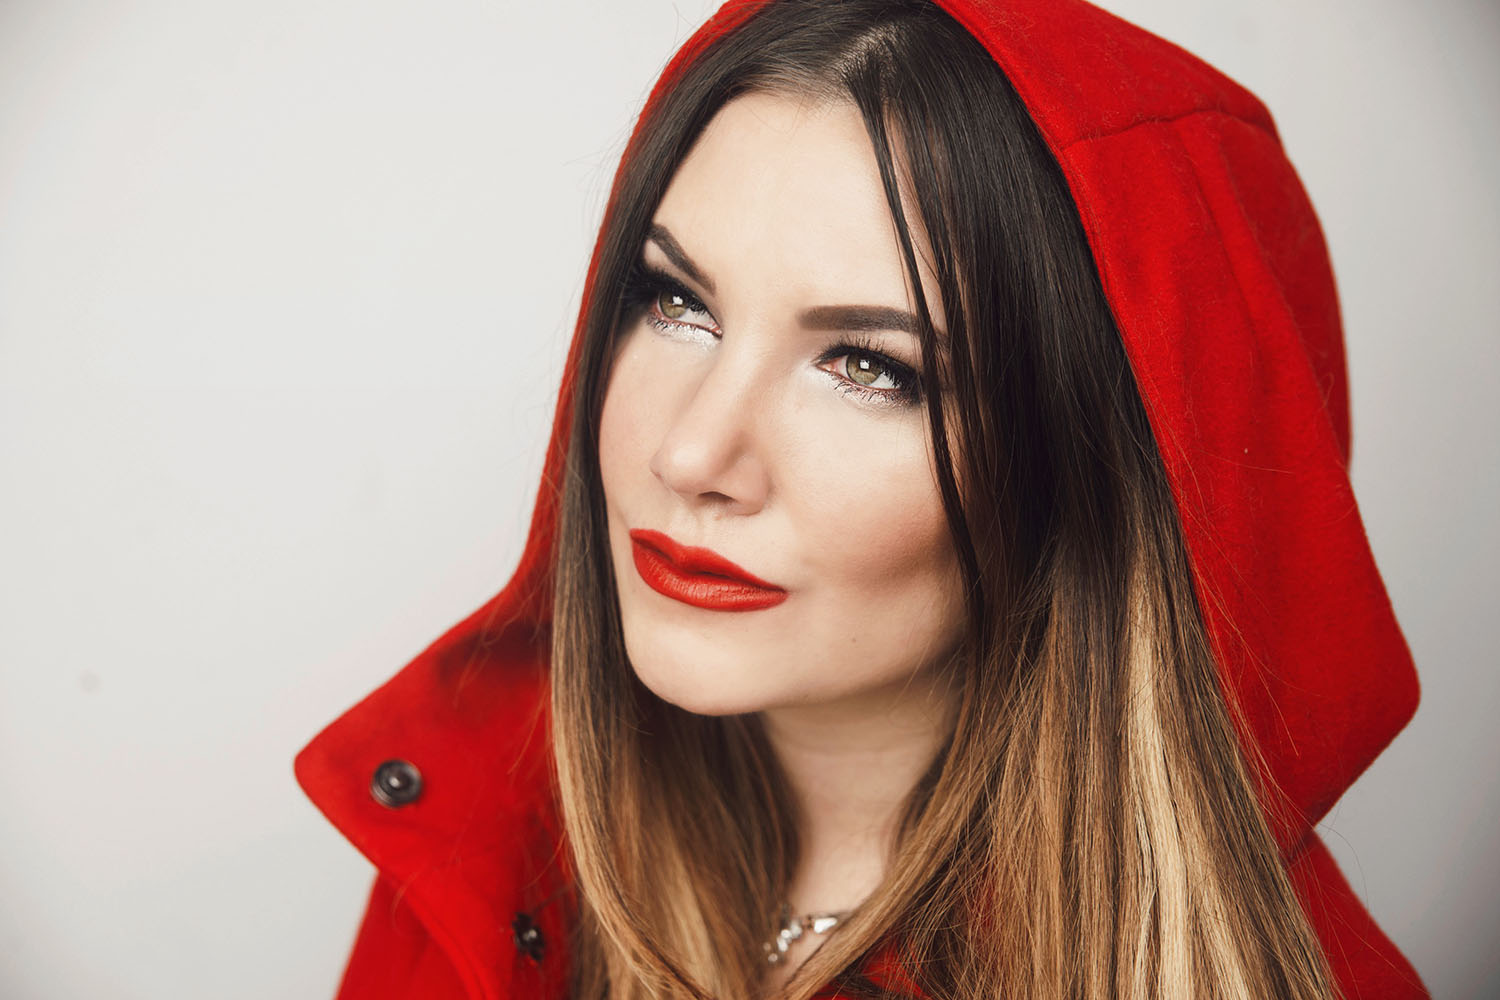 Portrait of woman wearing red riding hood